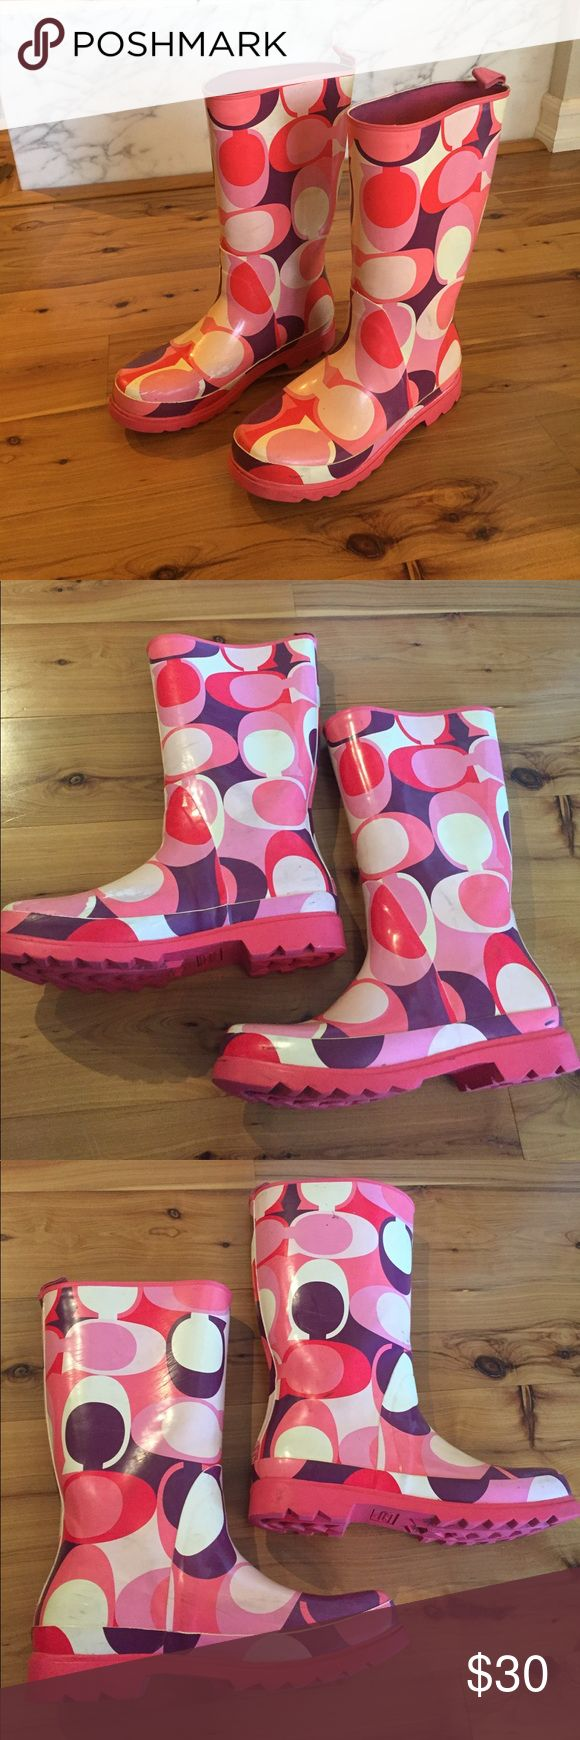 Coach Rain Boots Various shades of pink, white, and purple rubber rain boots. Very sturdy. Definitely worn and are dirty and scuffed but could be cleaned. They aren't super bad but worn. Price reflects the condition. Coach Shoes Winter & Rain Boots